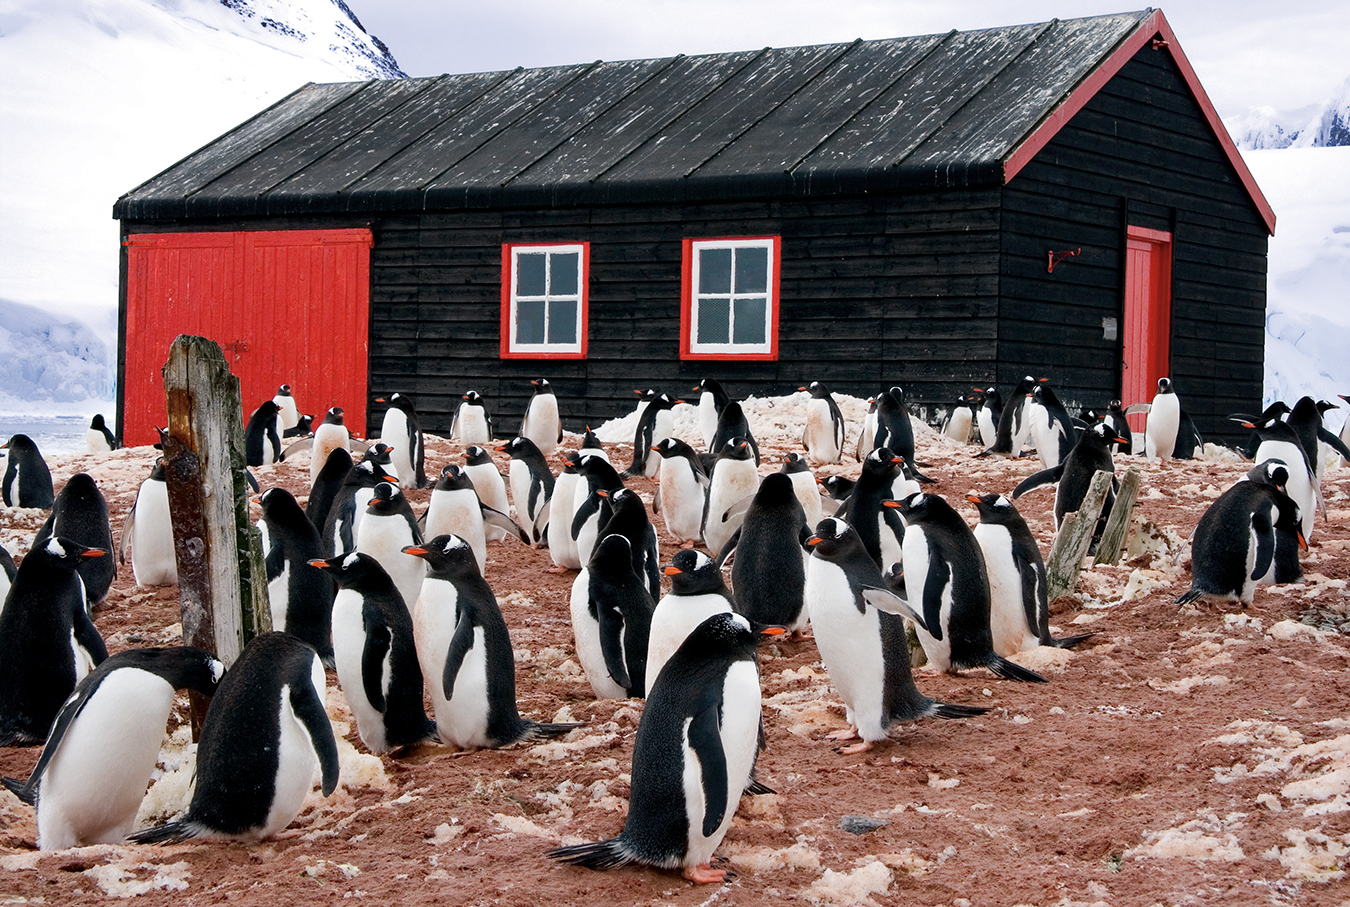 Nuvo Magazine: The Colourful South Pole